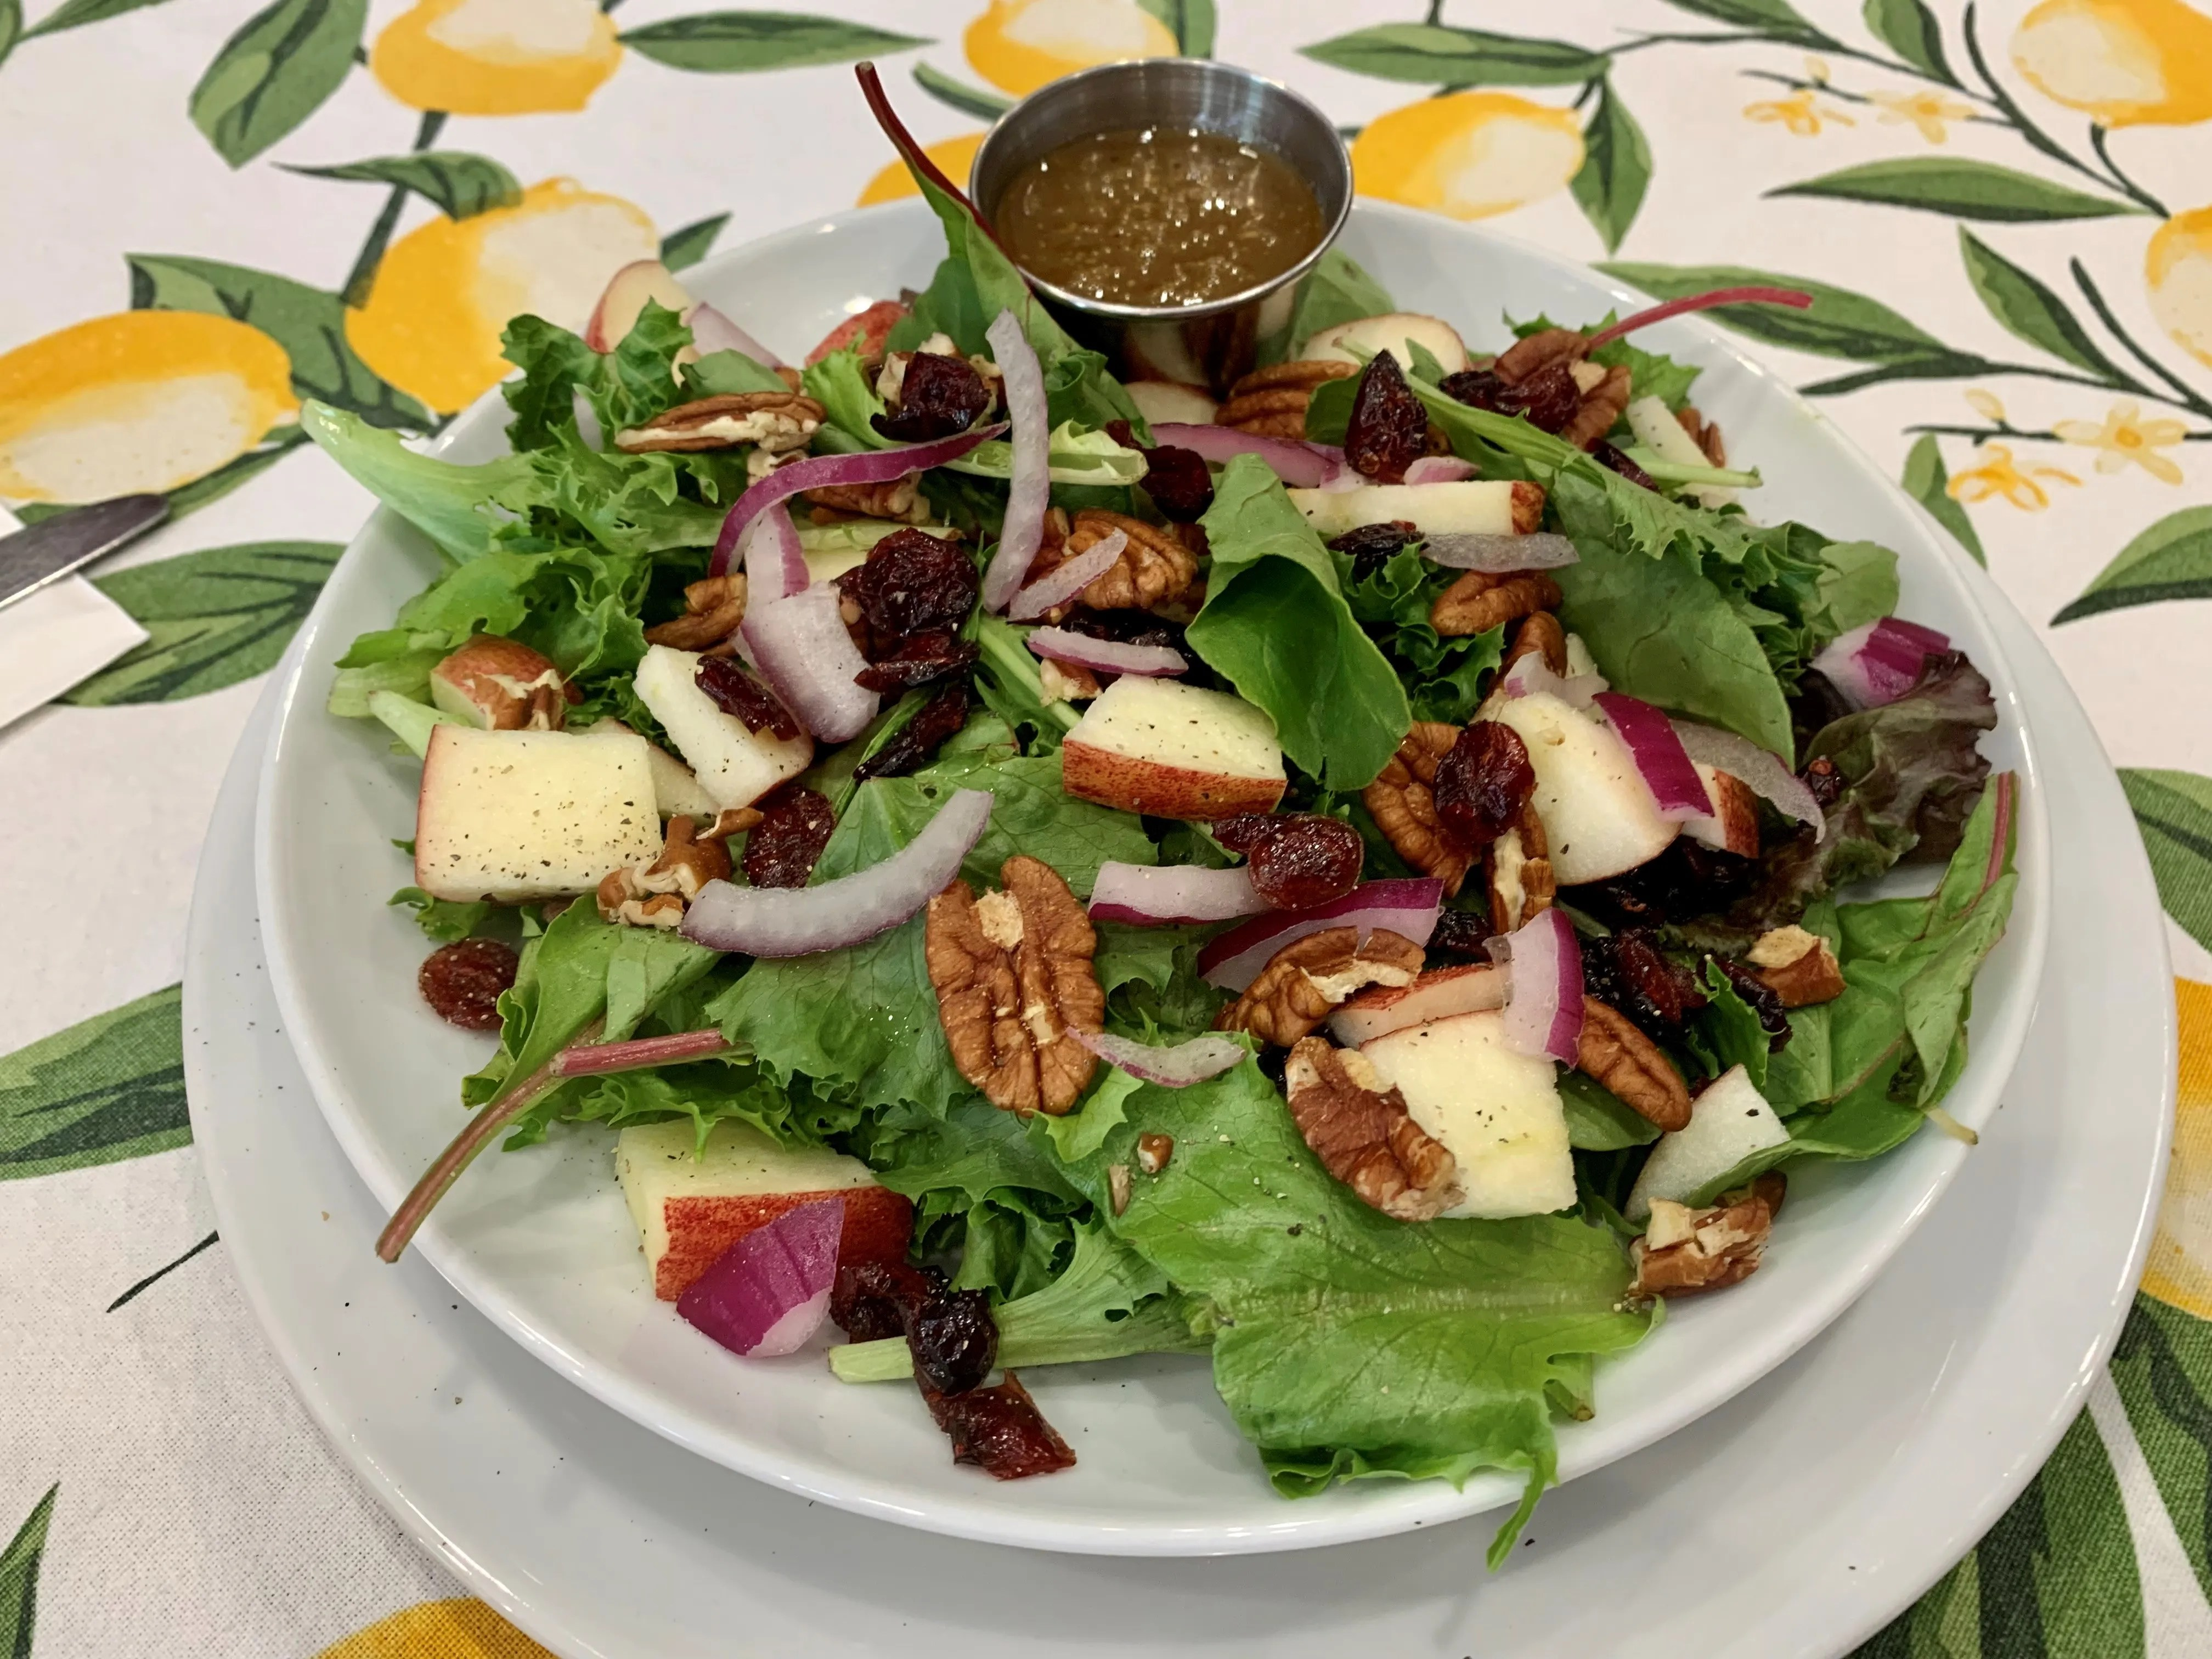 On the menu at The Curious Kitchen, 327 E. State St., Murfreesboro: the Rainbow salad has mixed greens topped with red onions, chopped apples, dried cranberries, pecans and feta cheese, served with house-made vinaigrette.